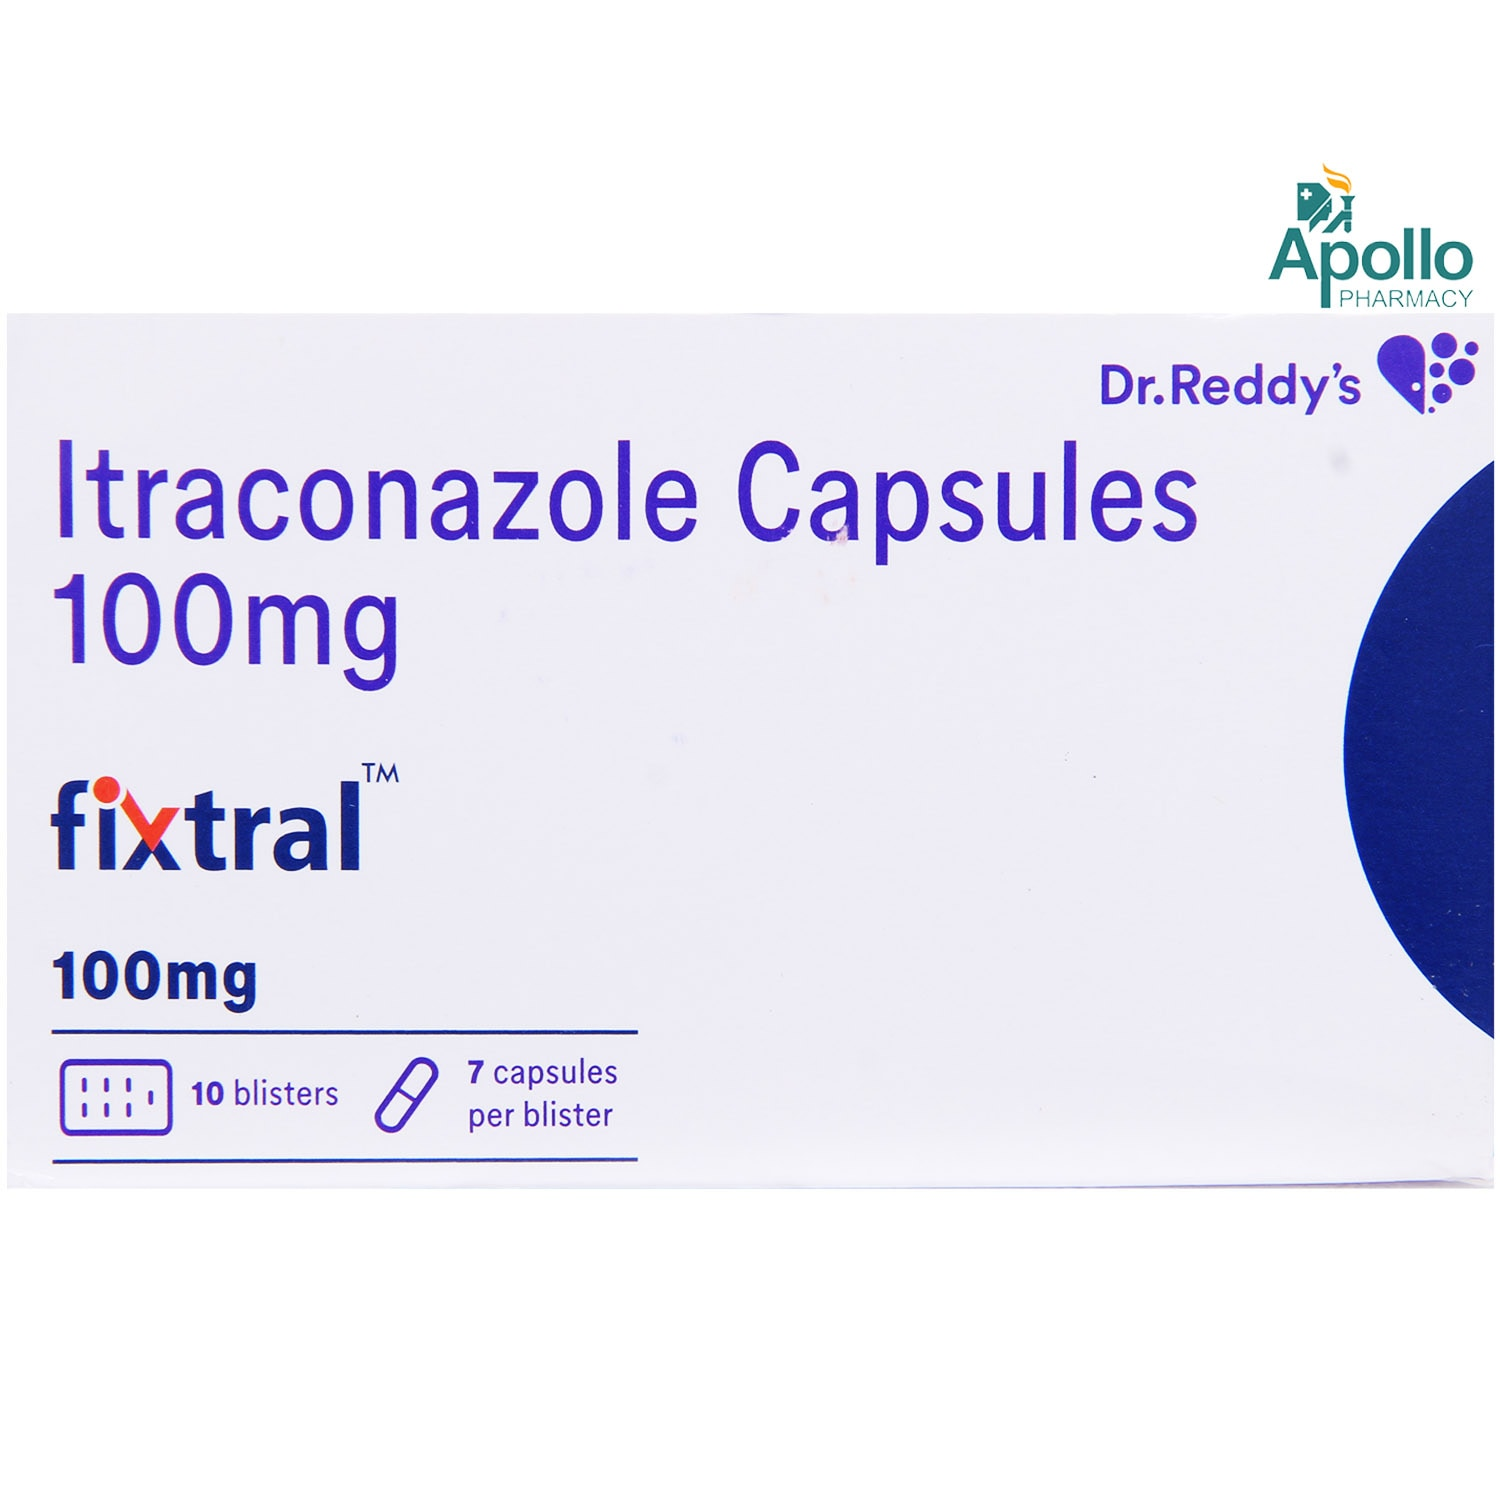 FIXTRAL 100MG CAPSULE 7'S